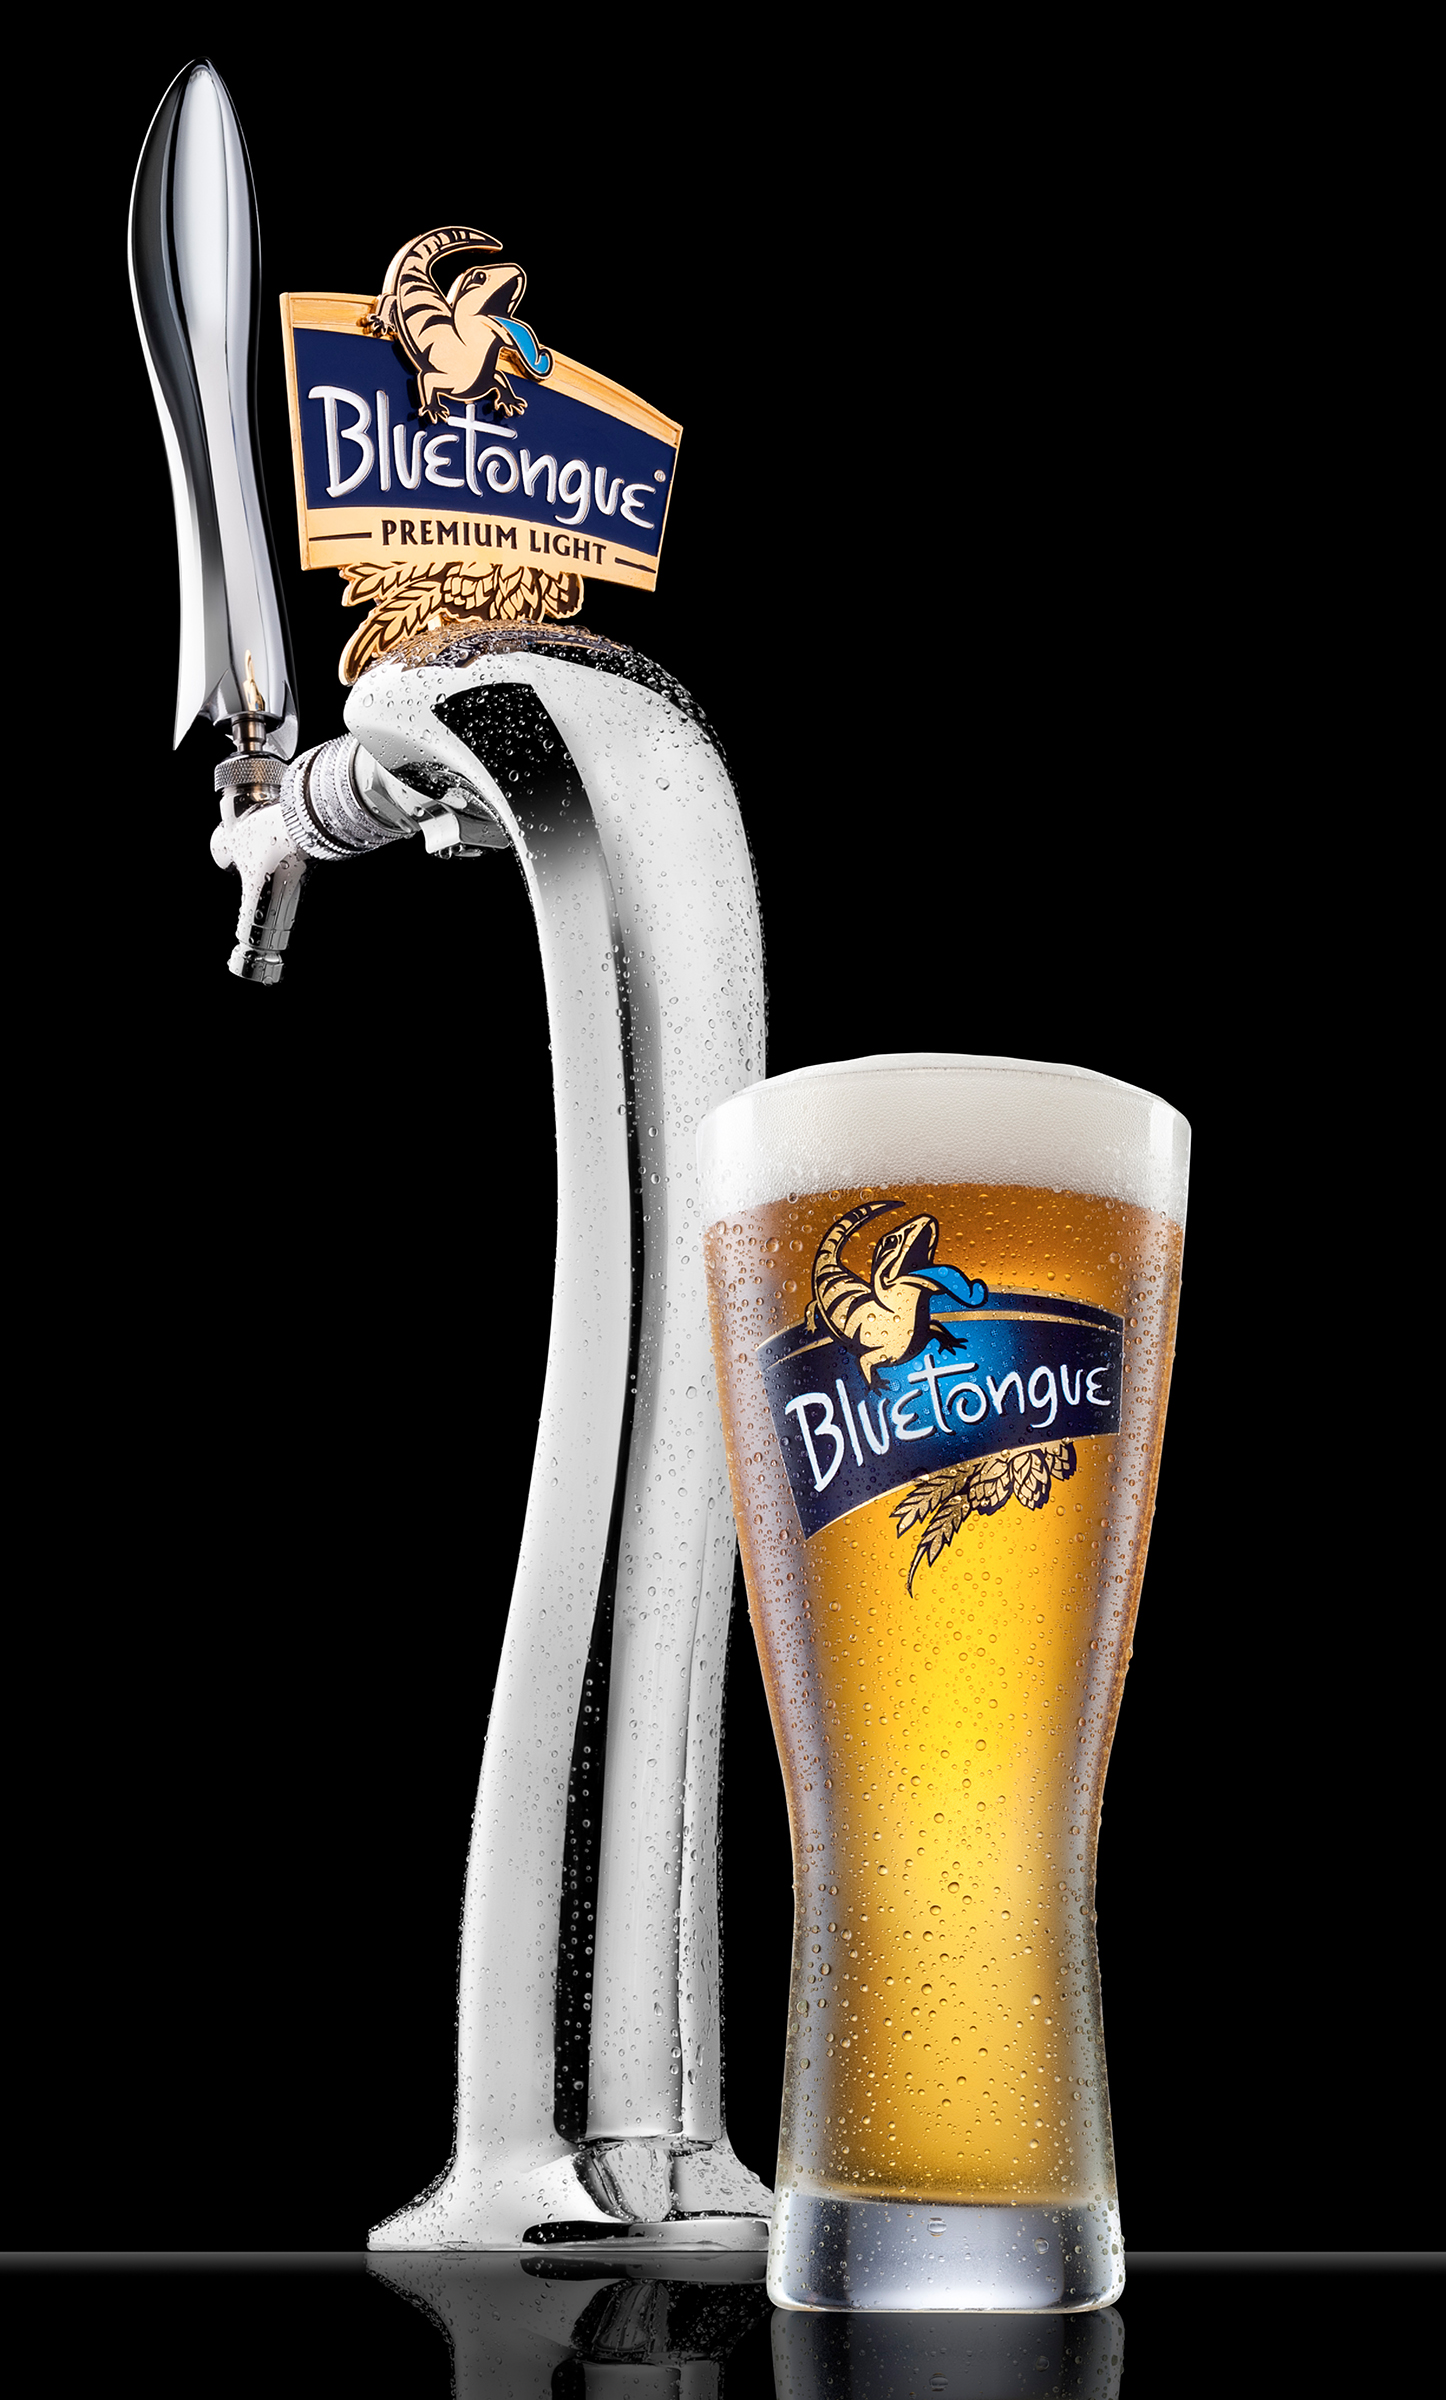 Advertising product alcohol beer photography Bluetongue beer tap and schooner of beer